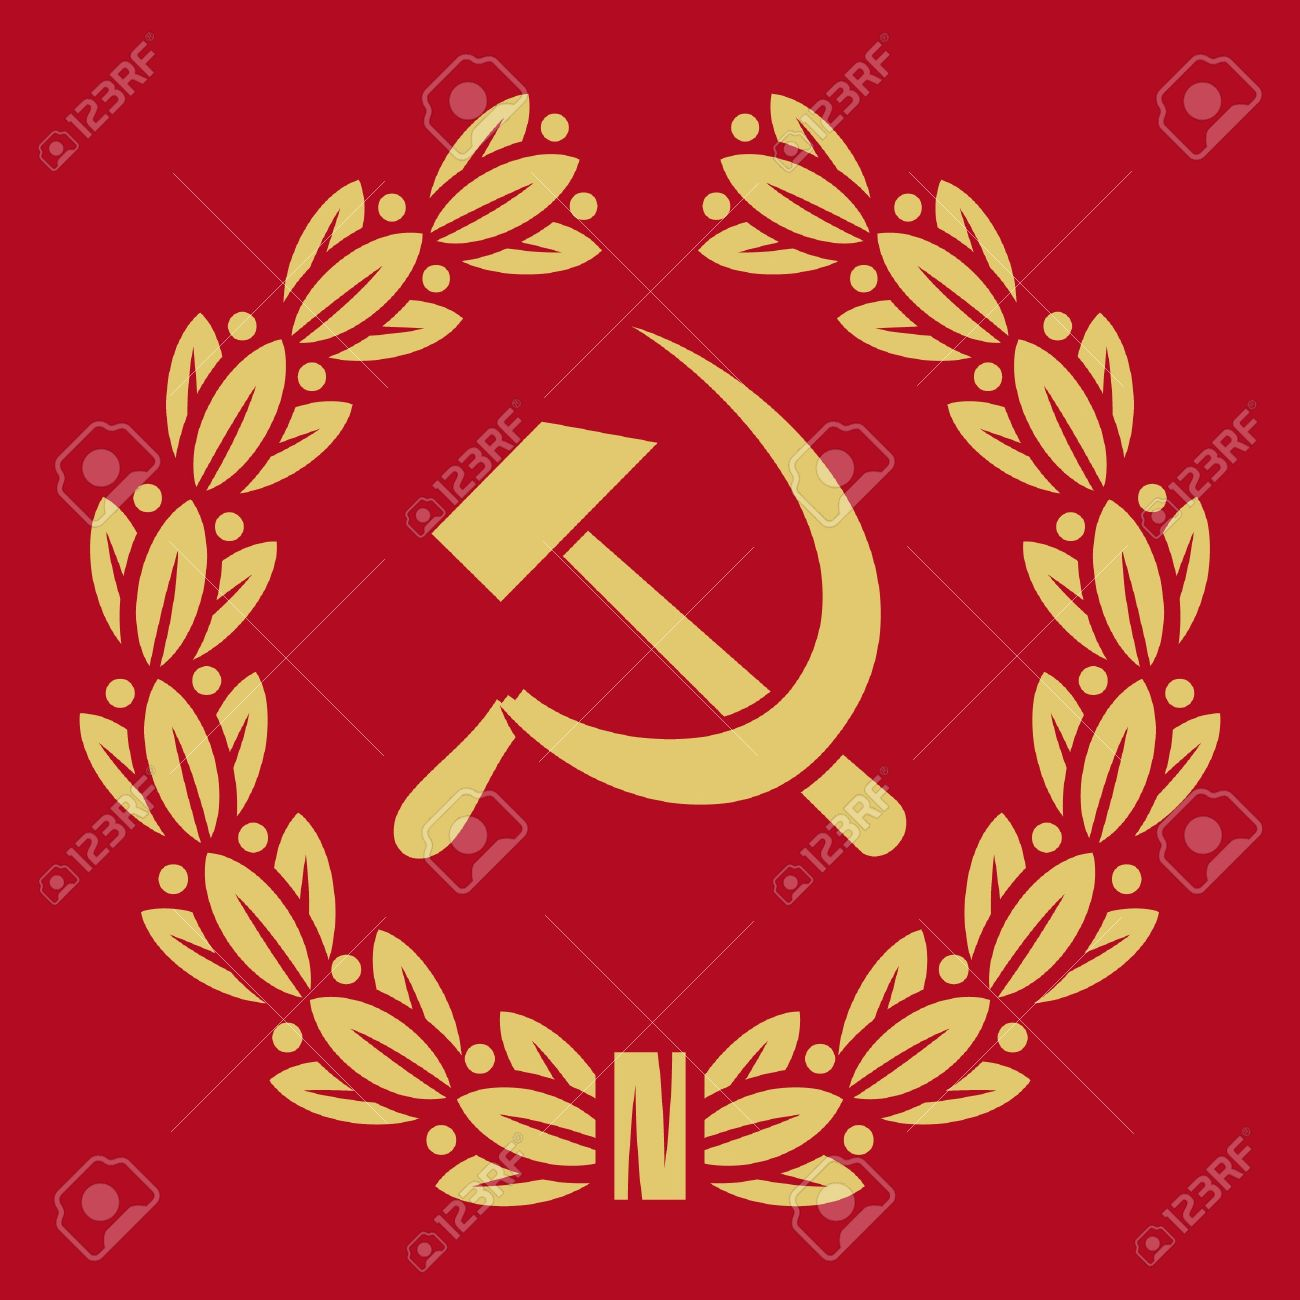 Symbol Of Ussr Hammer Sickle And Laurel Wreath Ussr Sign